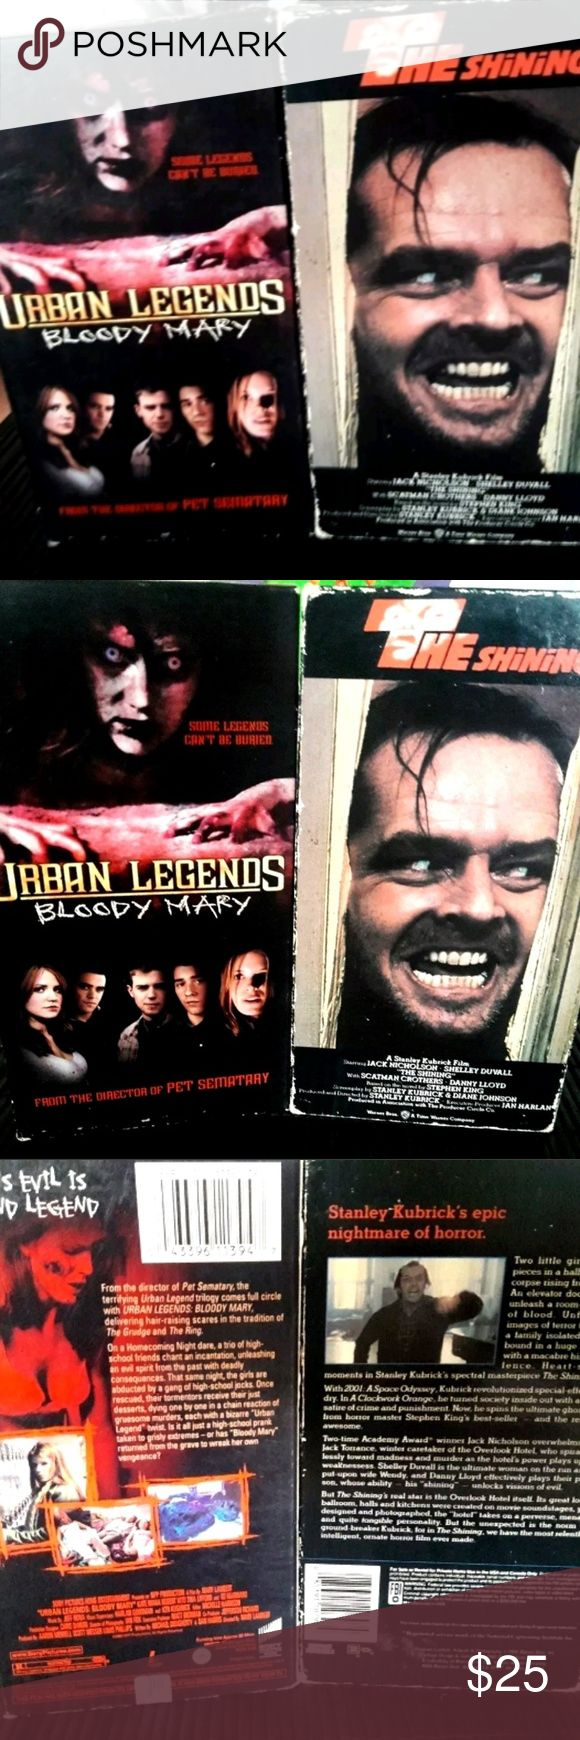 The Shining & Urban Legends Bloody Mary Vhs Like N The Shining & Urban Legends Bloody Mary Vhs Like New 2 VHS Super Cool Classic Horror Bloody Classic Red Rum Bloody Sick movies Sick Made Horror Cult Classic Movies Classic Movies At Its Best For Any True Horror Fan Collector Like Hannibal Lector Add These To Your Horror Collection If You May & Let The Red Rum Bloody Games Begin Shall We Let's Get Bloody Mate Let The Blood Reign Drip Fall & Gush Like A Game Of Bloodsport Human Blood & Flesh…